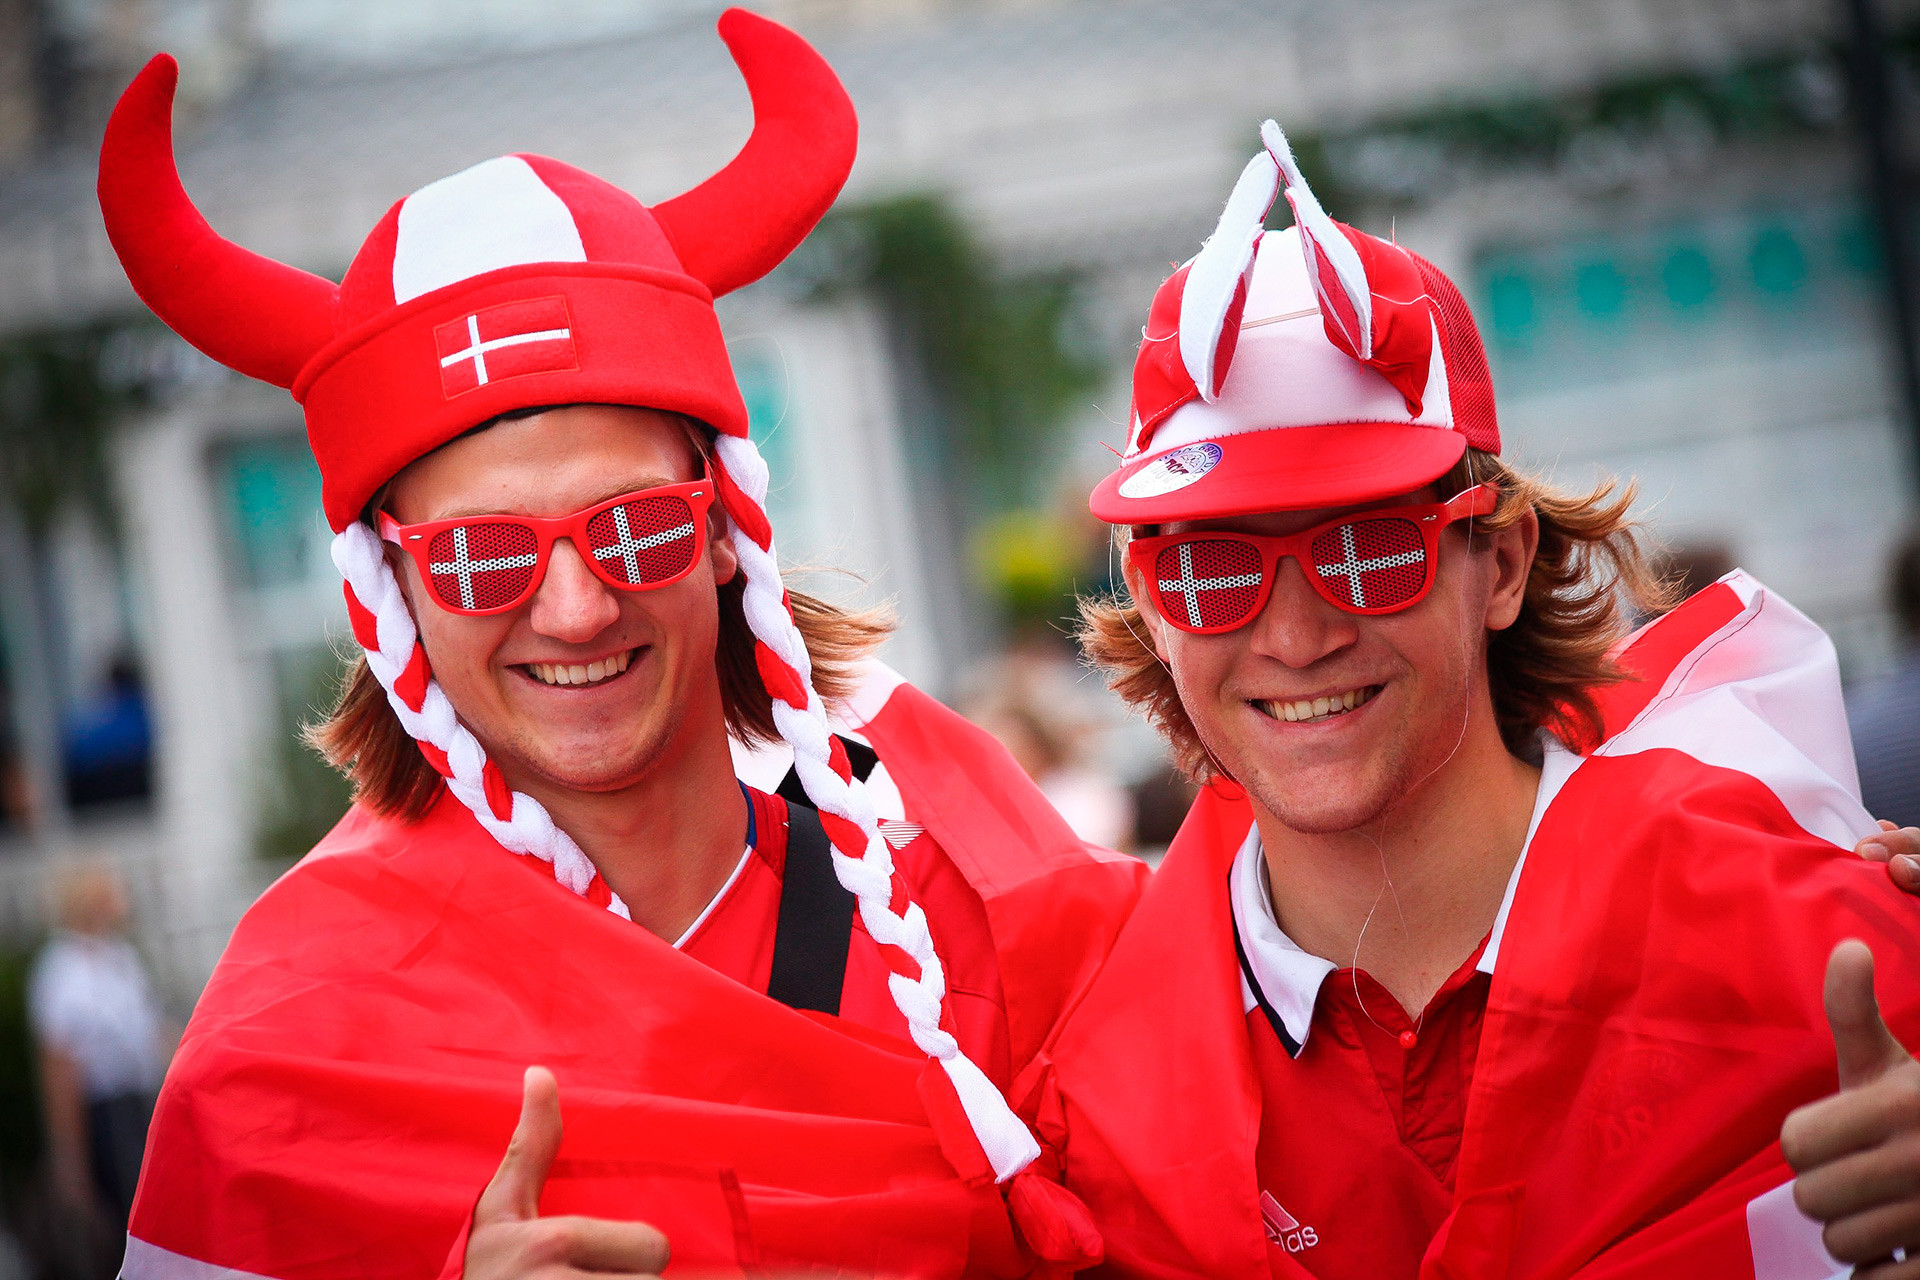 These Denmark fans are checking out Moscow before heading off to Saransk, where their team will face Peru in two days' time. The Danes will be relying on the talents of Tottenham midfield ace Christian Eriksen to carry them through to the next round.